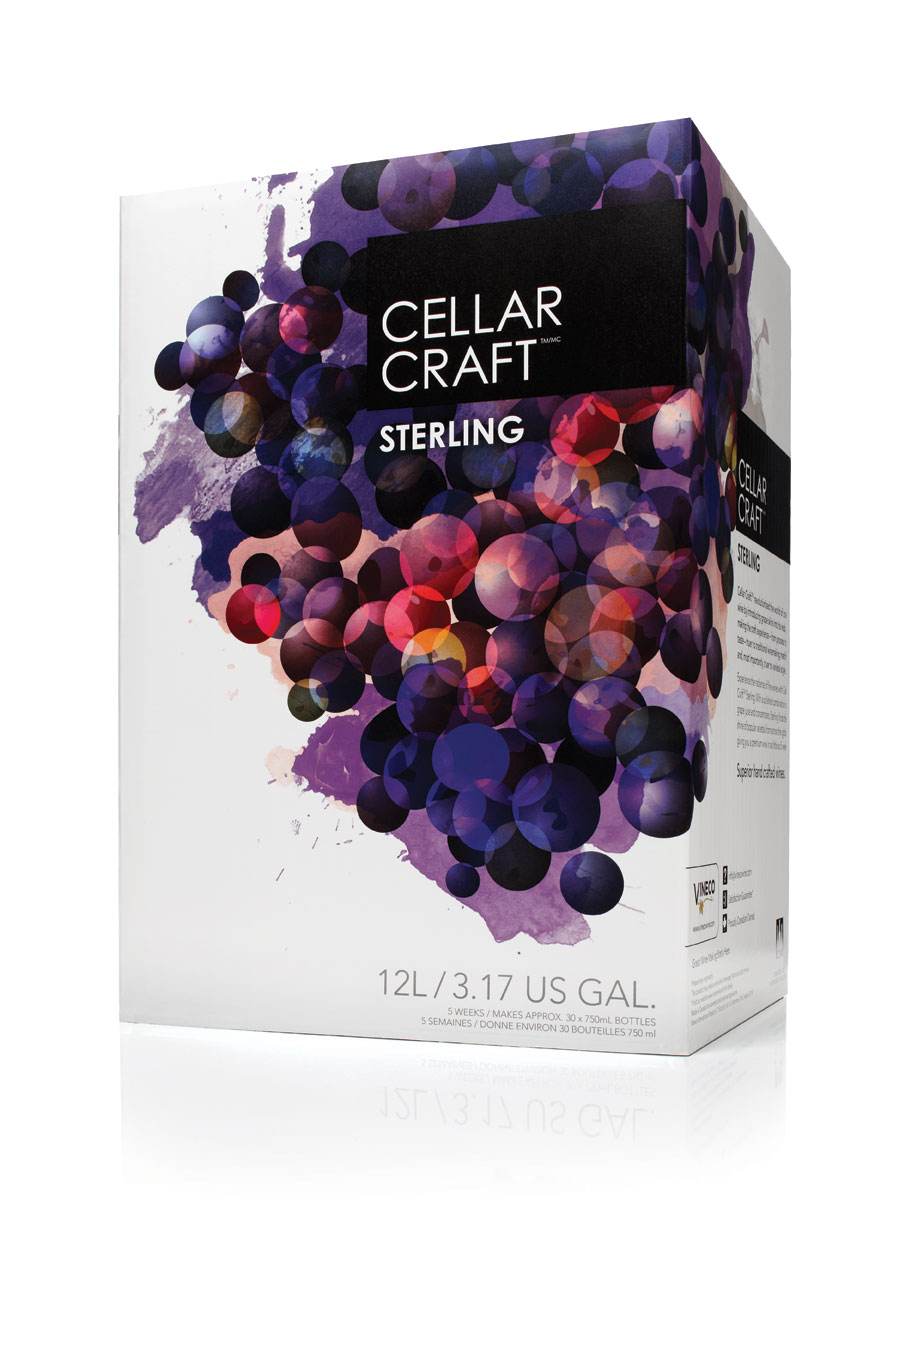 - Experience the radiance of fine wines with Cellar Craft Sterling. With a polished combination of grape juice and concentrates, Sterling finds the shine of popular varietals from across the globe, giving you a premium wine in as little as 5 weeks